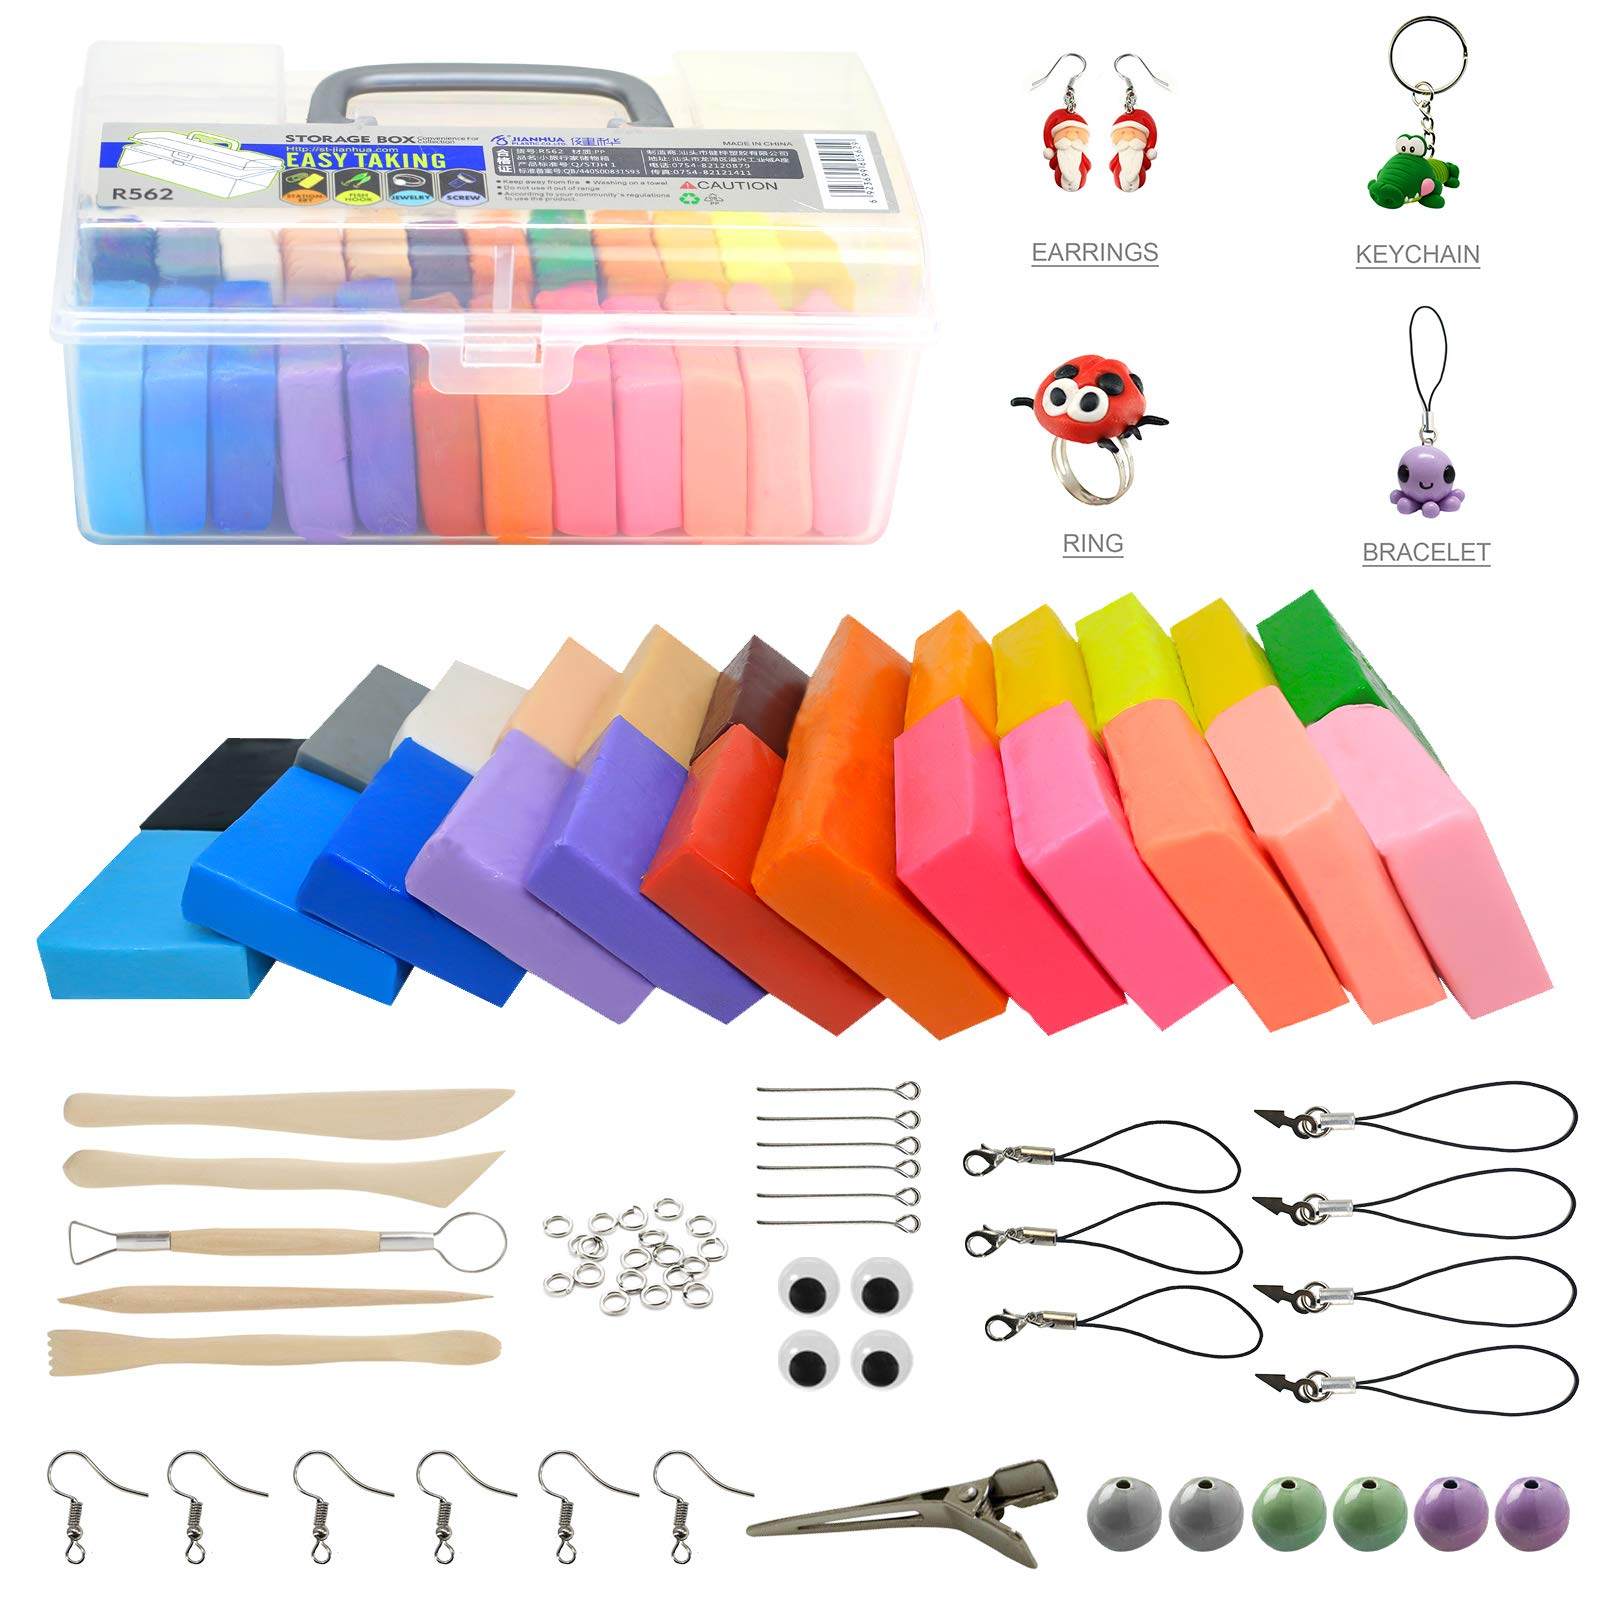 Polymer Clay Kit, Ultra Soft & Stretchable Baking Molding Clay- 24 Color Blocks with Bonus Tools, Accessories and Easy Storage Box - DIY Modeling Magic Clay Kit for Kids/Adults by MerchantCo